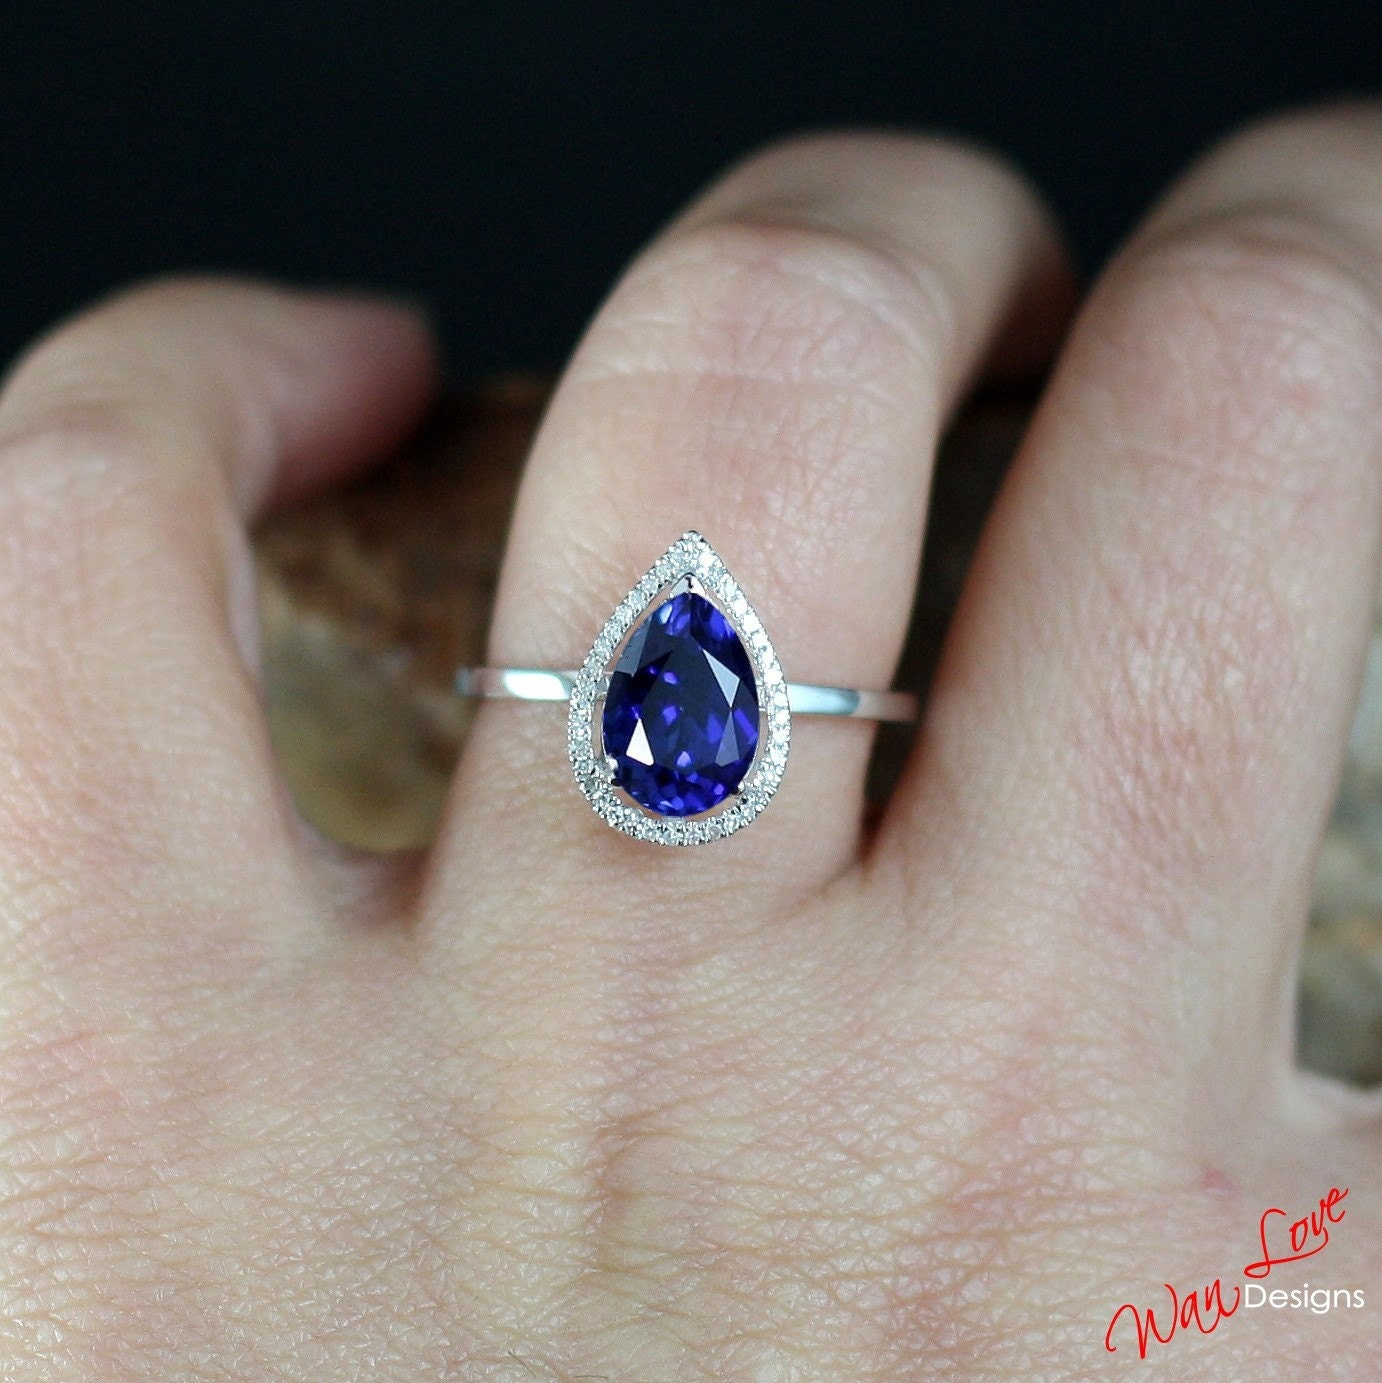 in sapphires sell sapphire jewelry buyers massachusetts